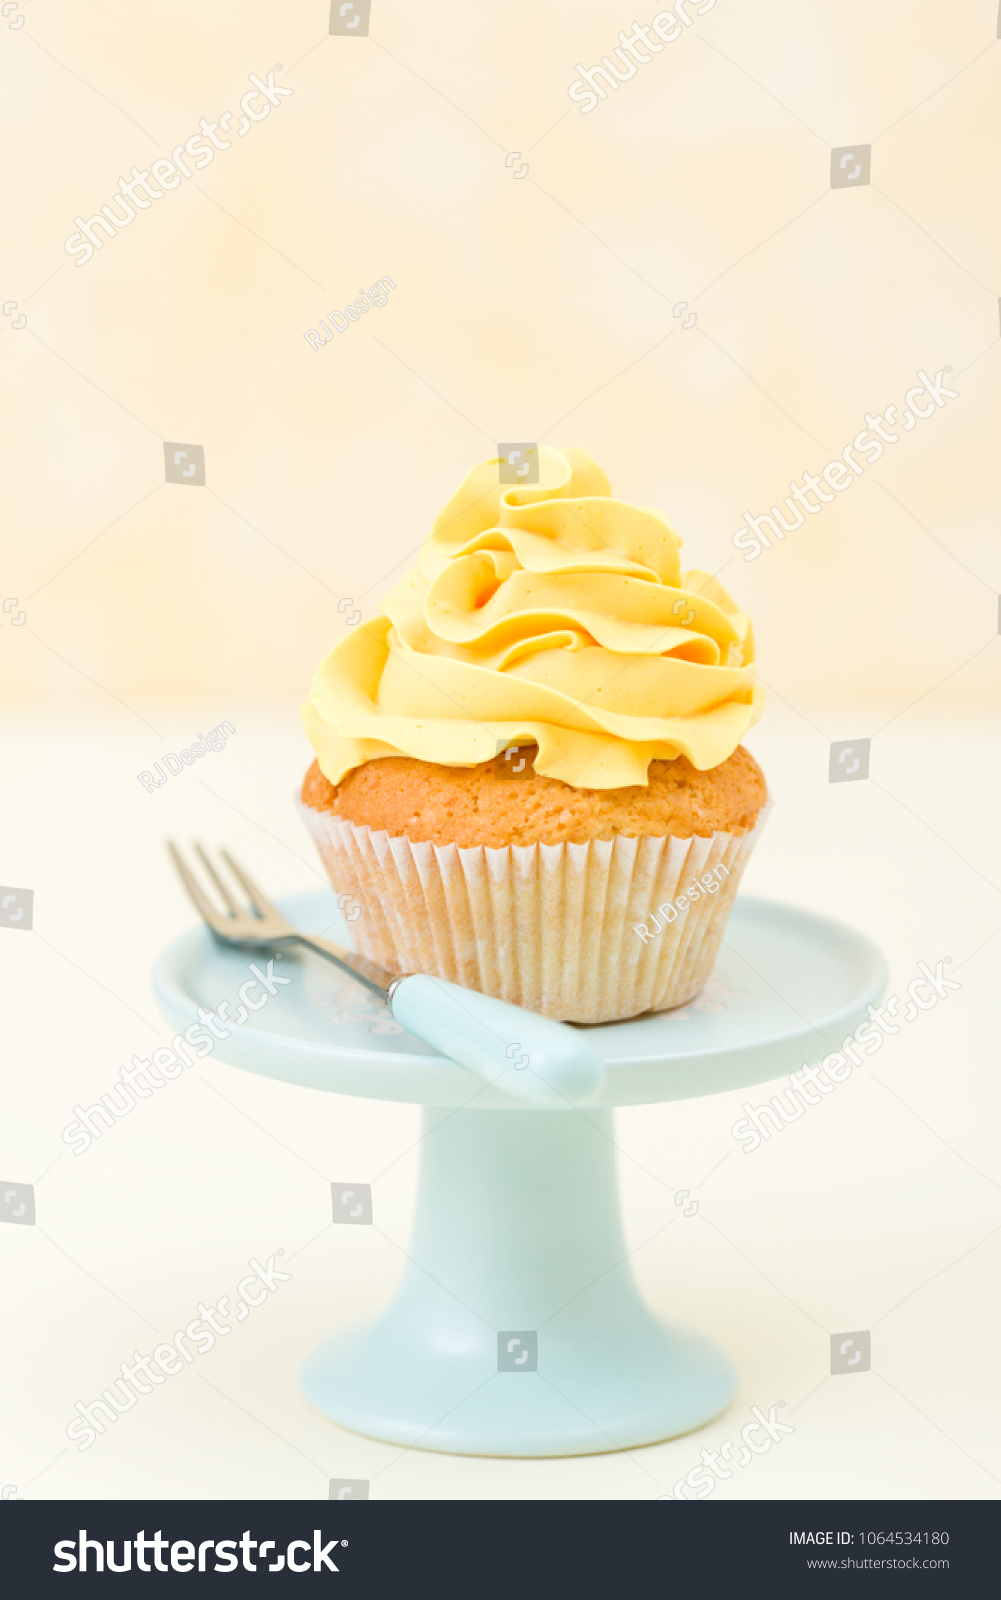 Décoration De Cupcake Cupcake Yellow Cream Decoration On Blue Stock Photo Edit Now